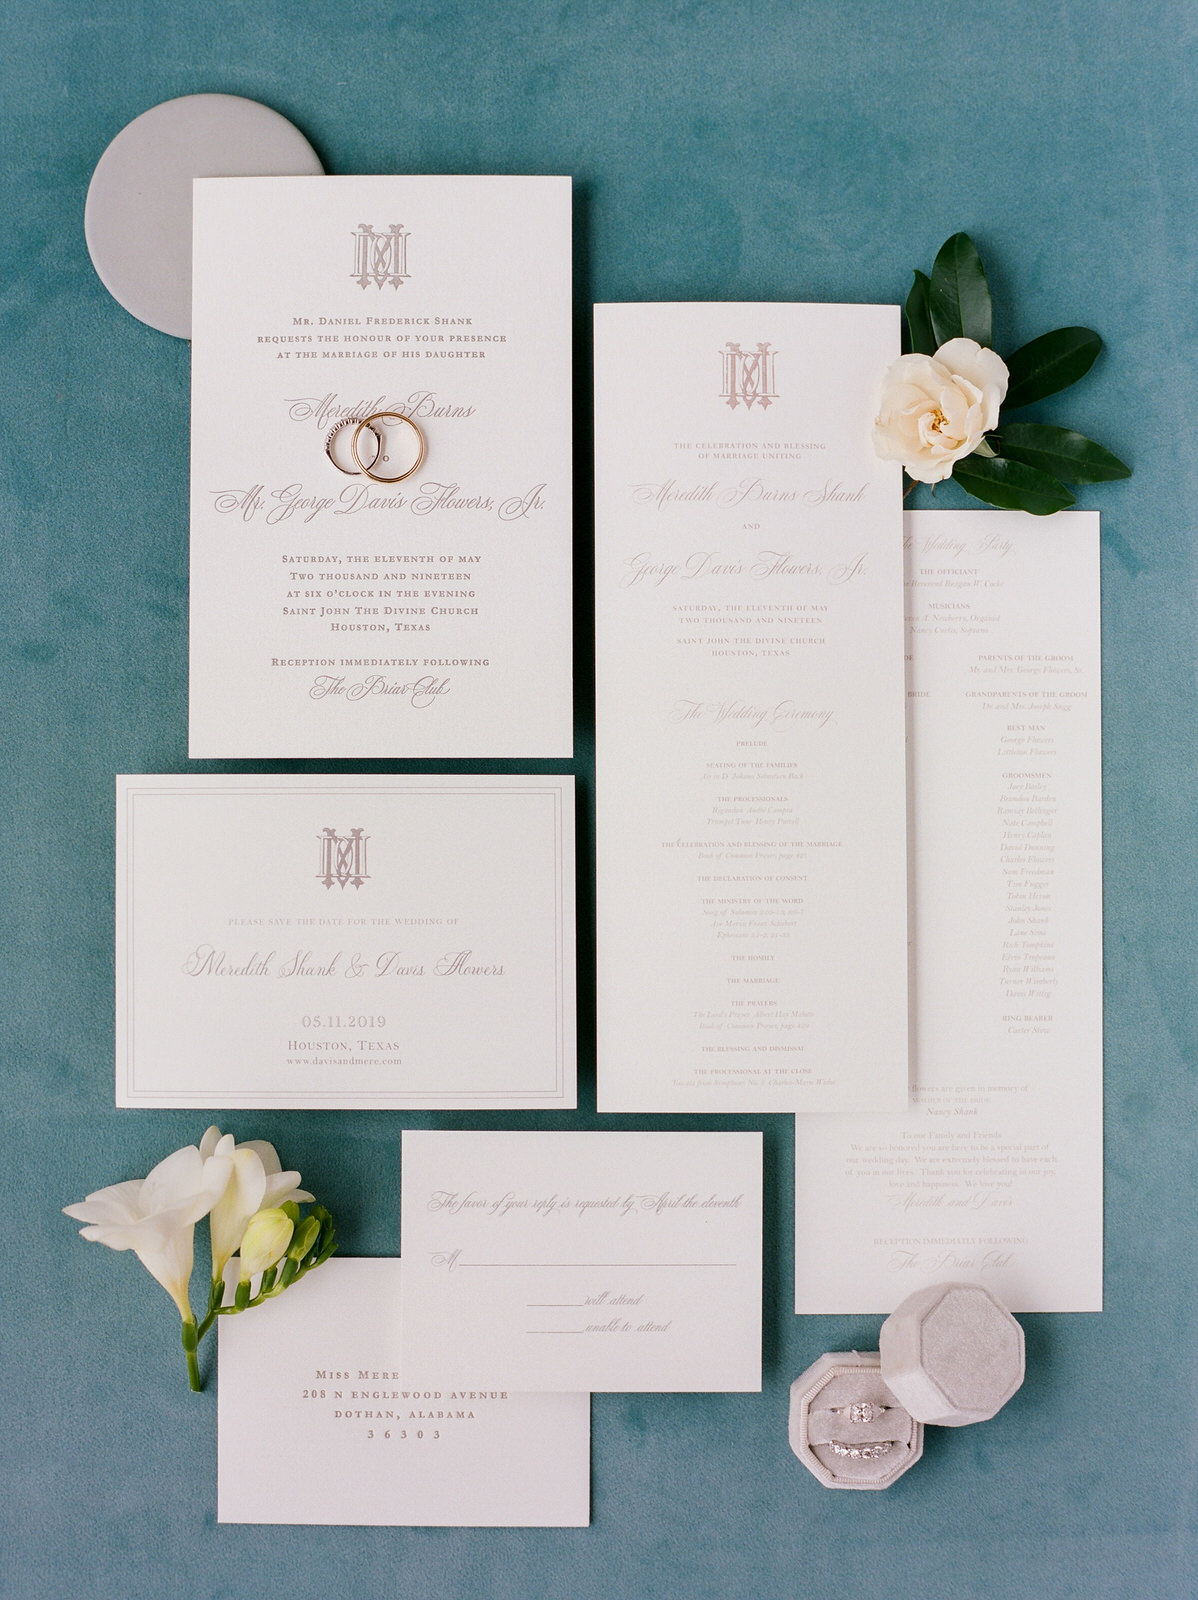 Invitation suite, classic, timeless. Houston, Texas.  Photography:  Josh & Dana Fernandez , Event Design & Floral:  Maxit Flower Design , Event Planner: Emily Moise,  Keely Thorne Events